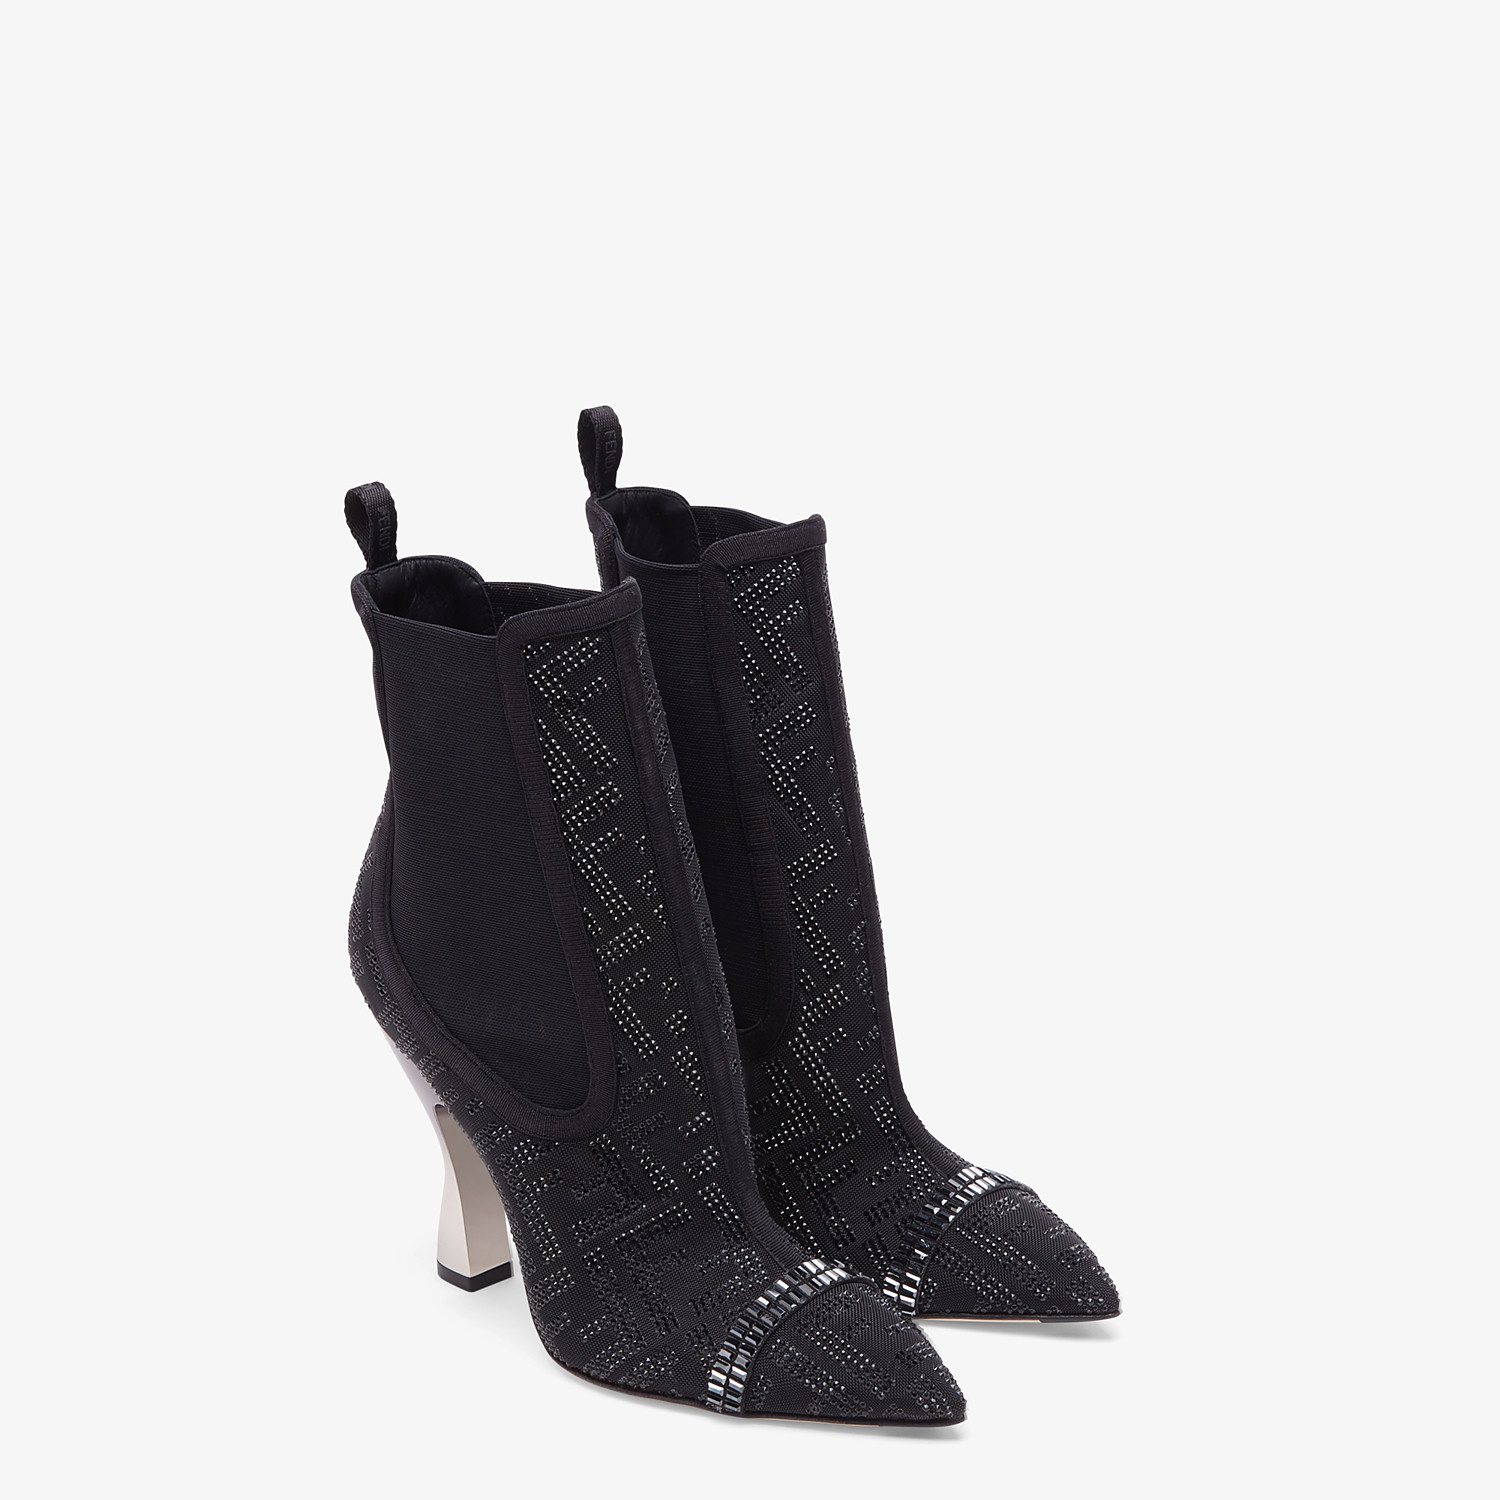 FENDI ANKLE BOOTS - Colibrì in black mesh - view 4 detail